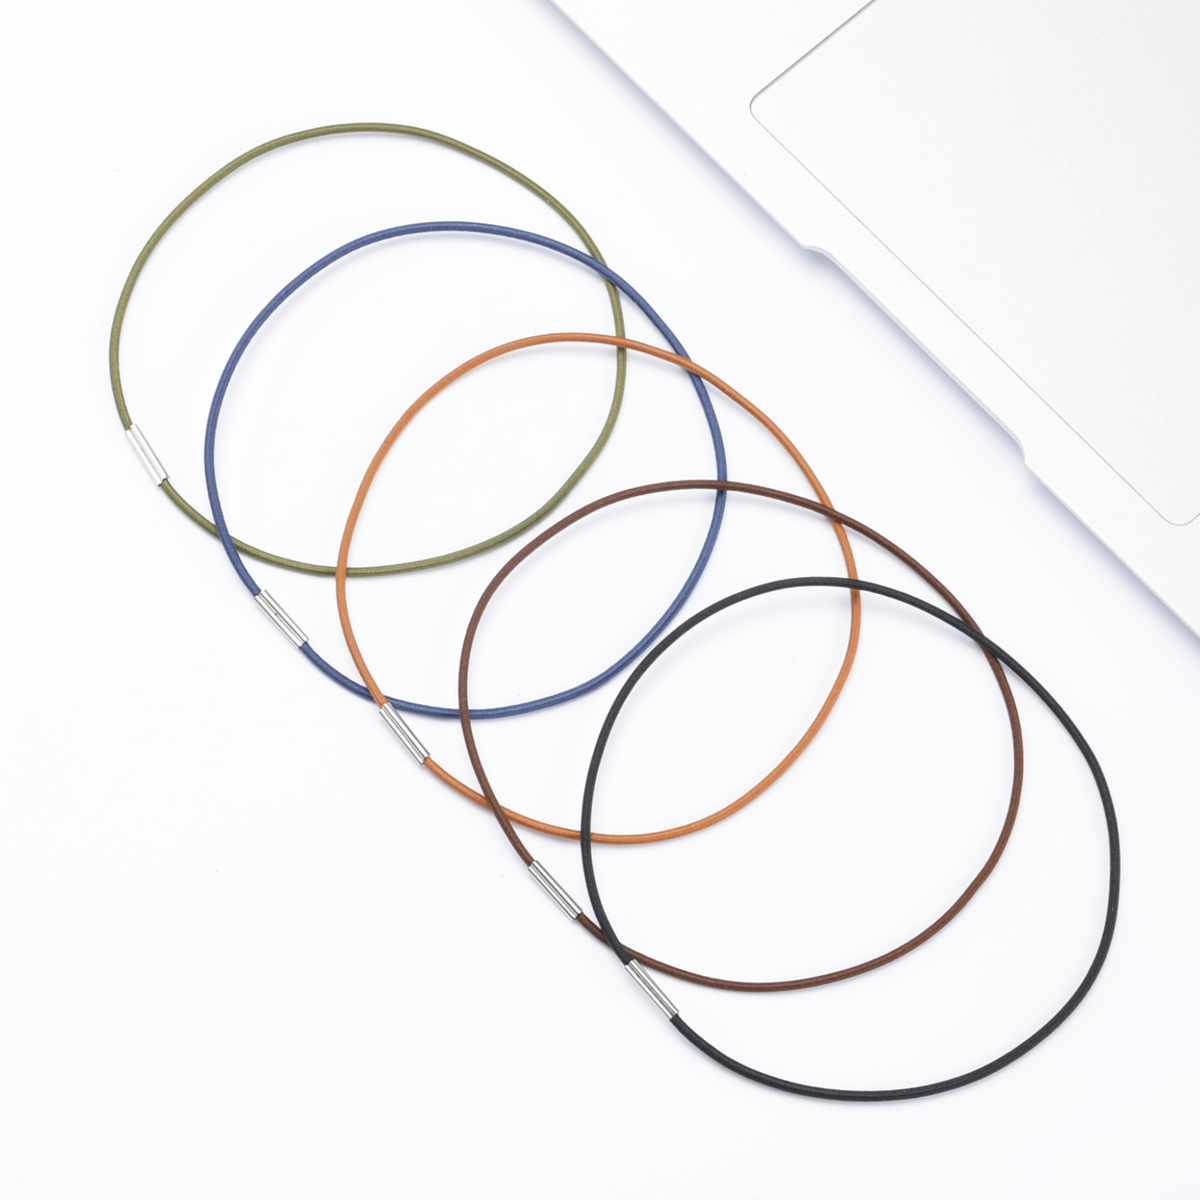 Retro Color Spare Rubber Band For Midori Travelers Notebook Inner Core Refill Filler Paper Repair Elastic String Bungee Cord